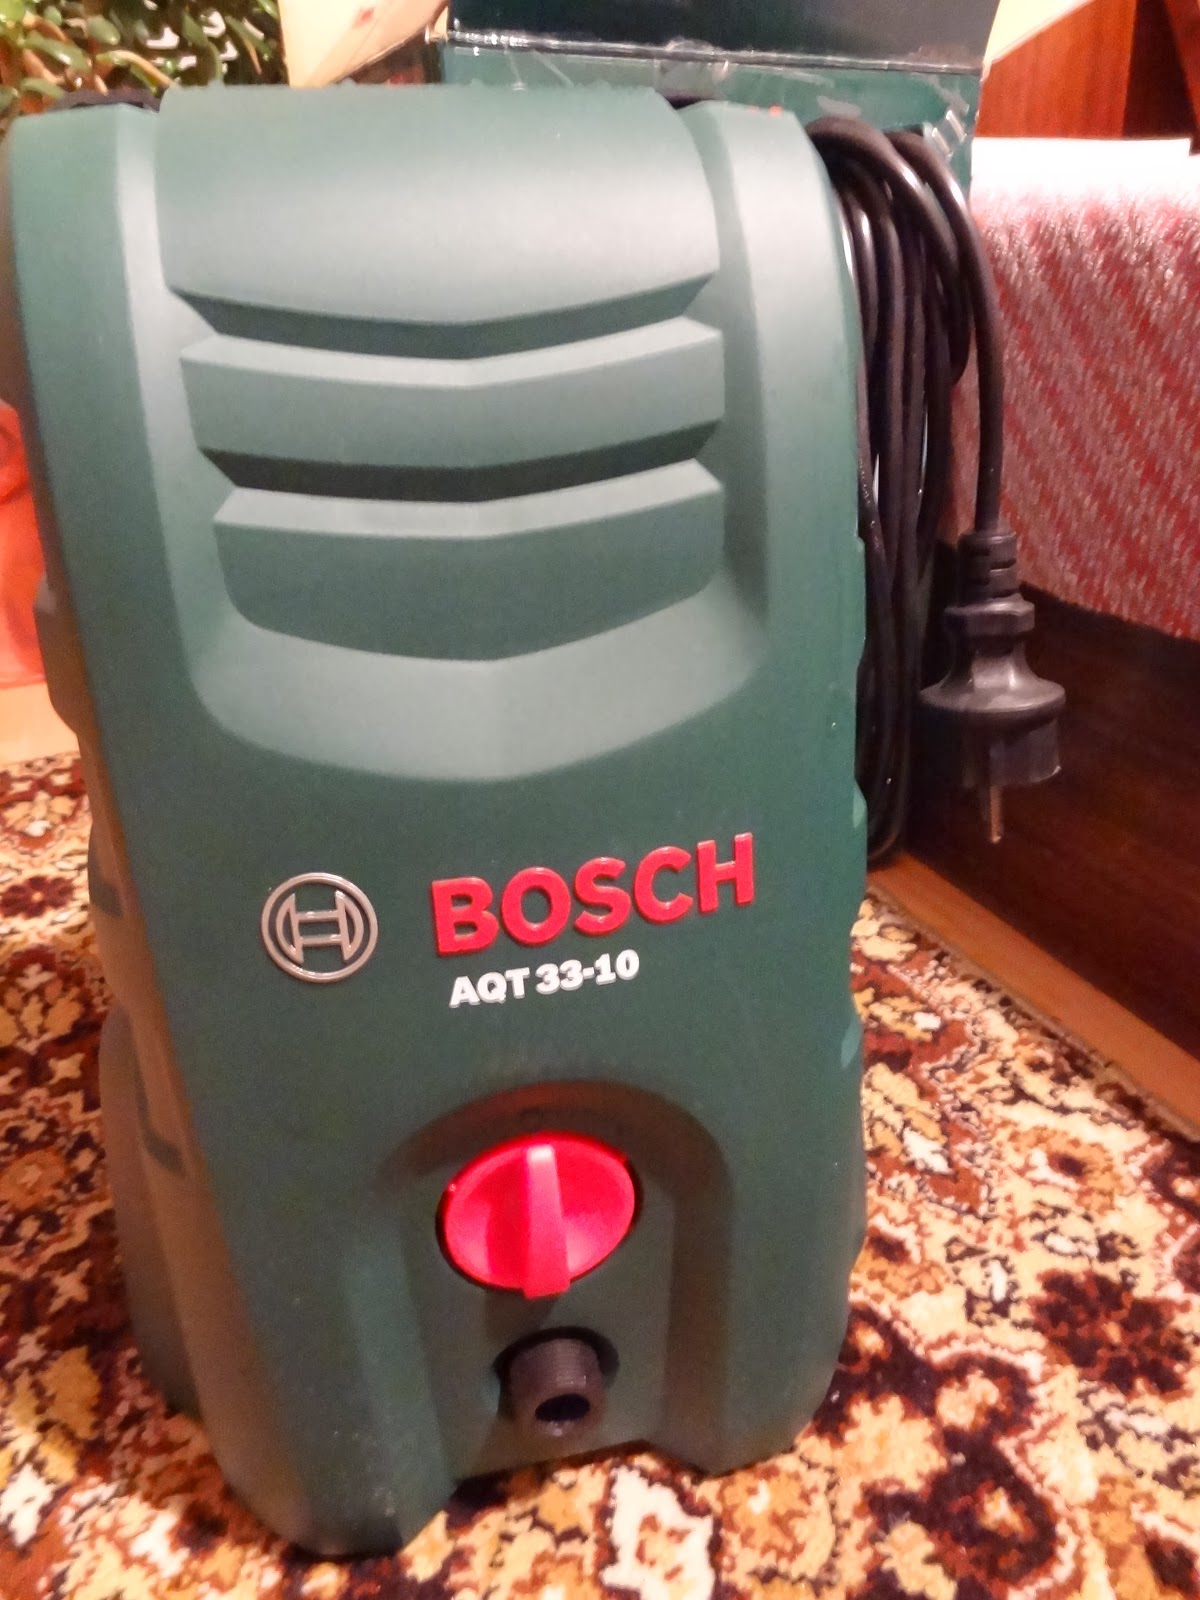 Test And Review Bosch Aqt 33 10 High Pressure Washer